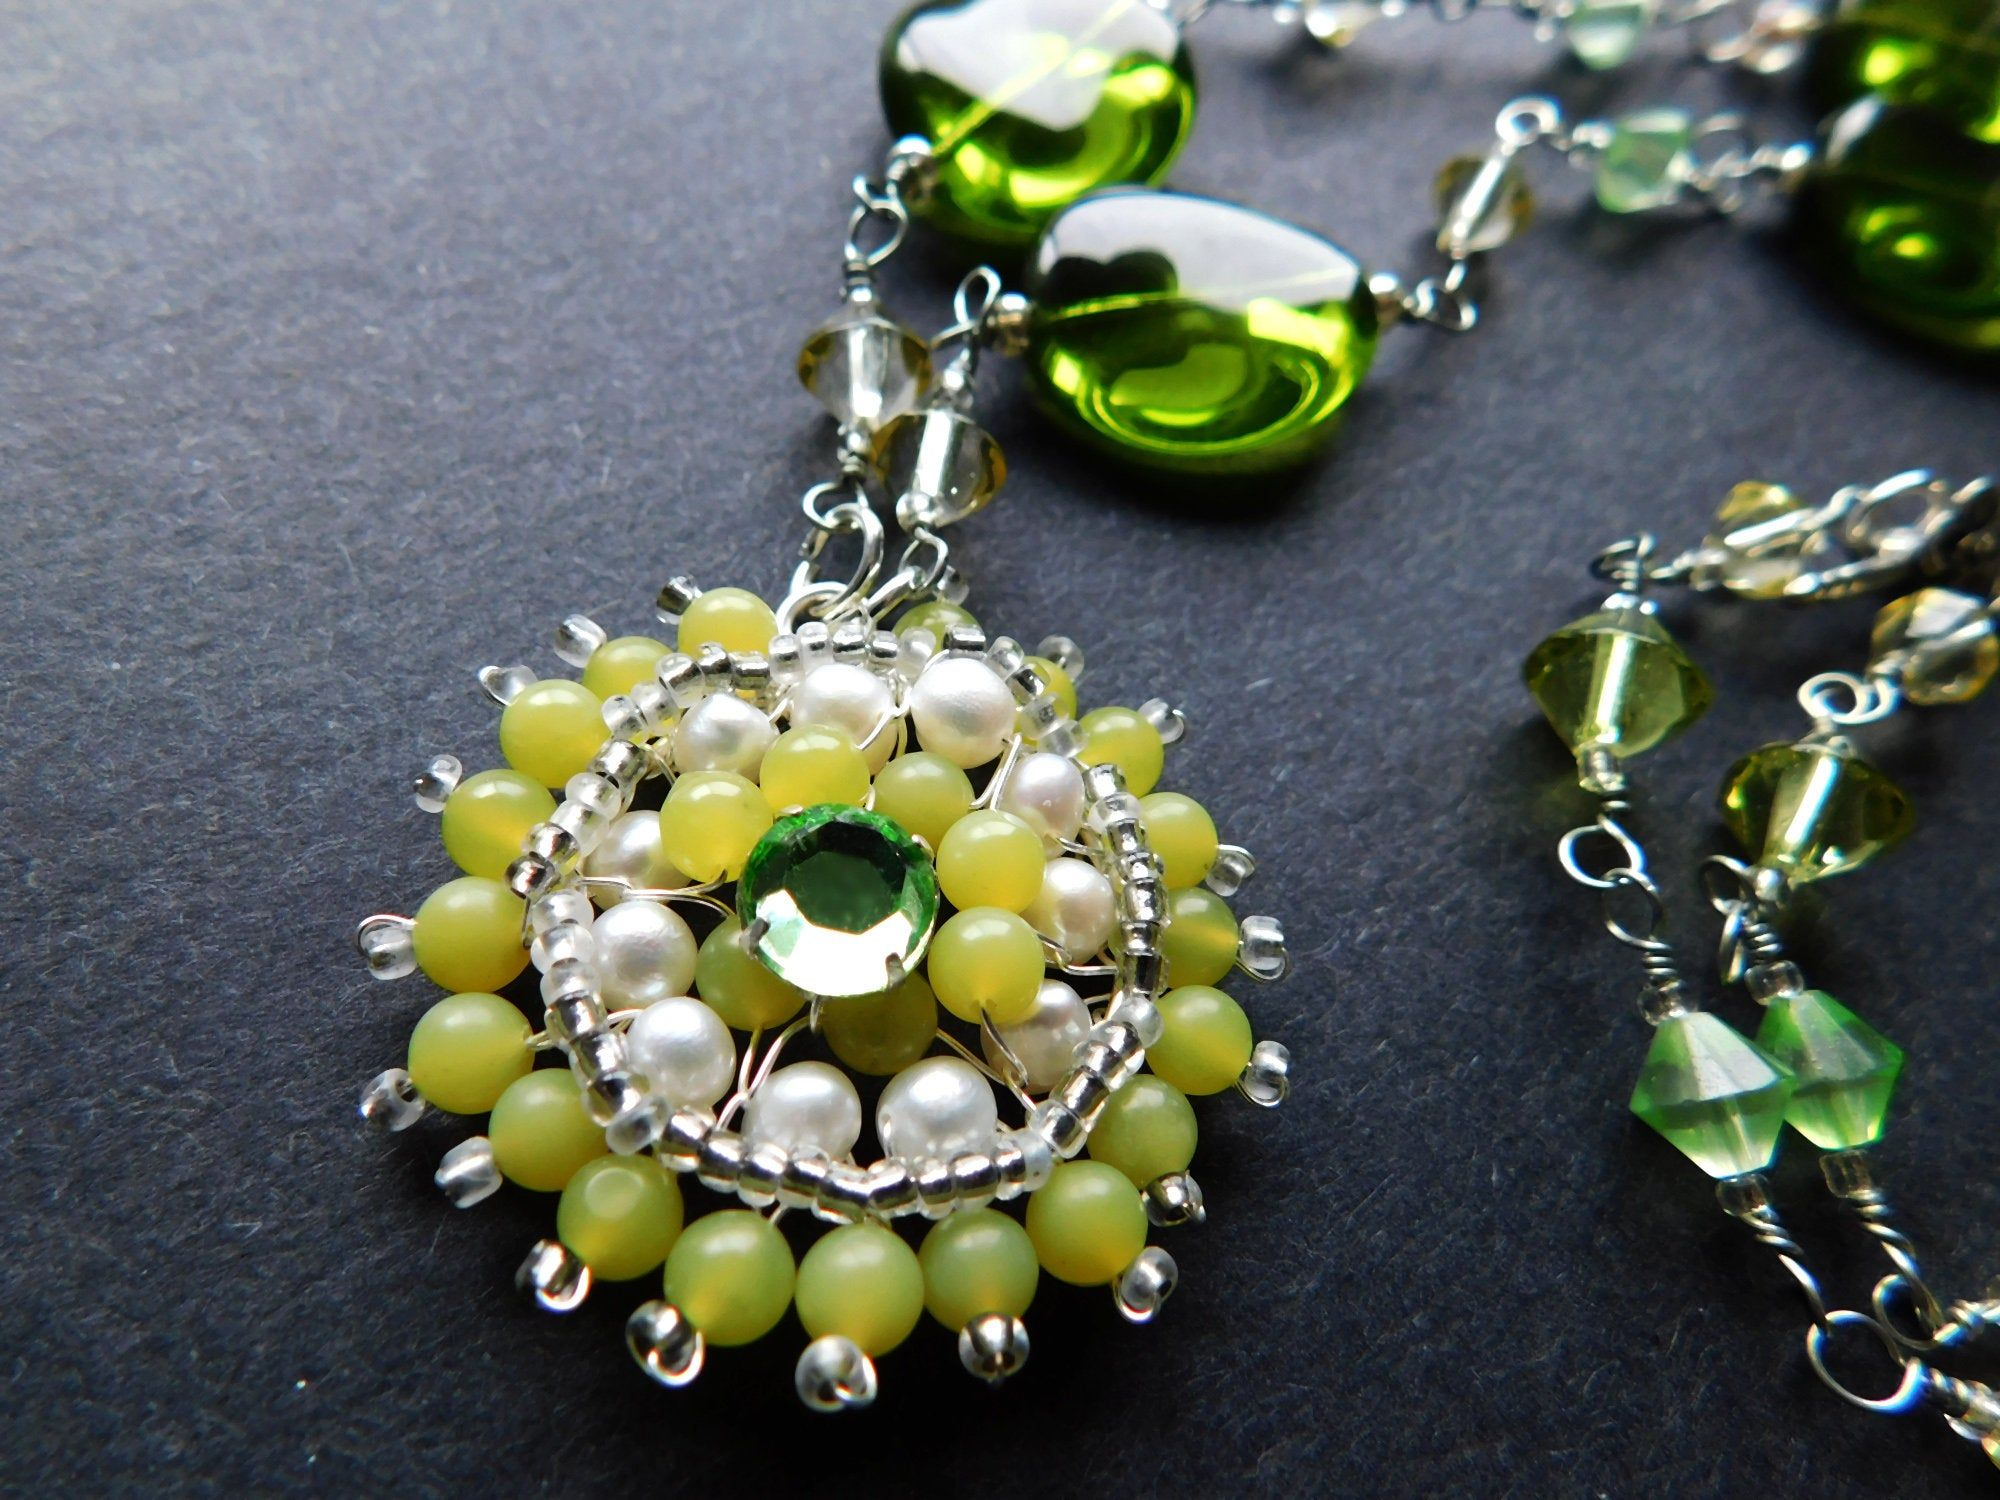 Beaded Round Pendant Necklace With Green Jades White Fw Pearls Green Rhinestone Olive Green Oval Glass Faceted Crystal Beads N D16 008 Round Pendant Necklace Crystal Beads Round Pendant